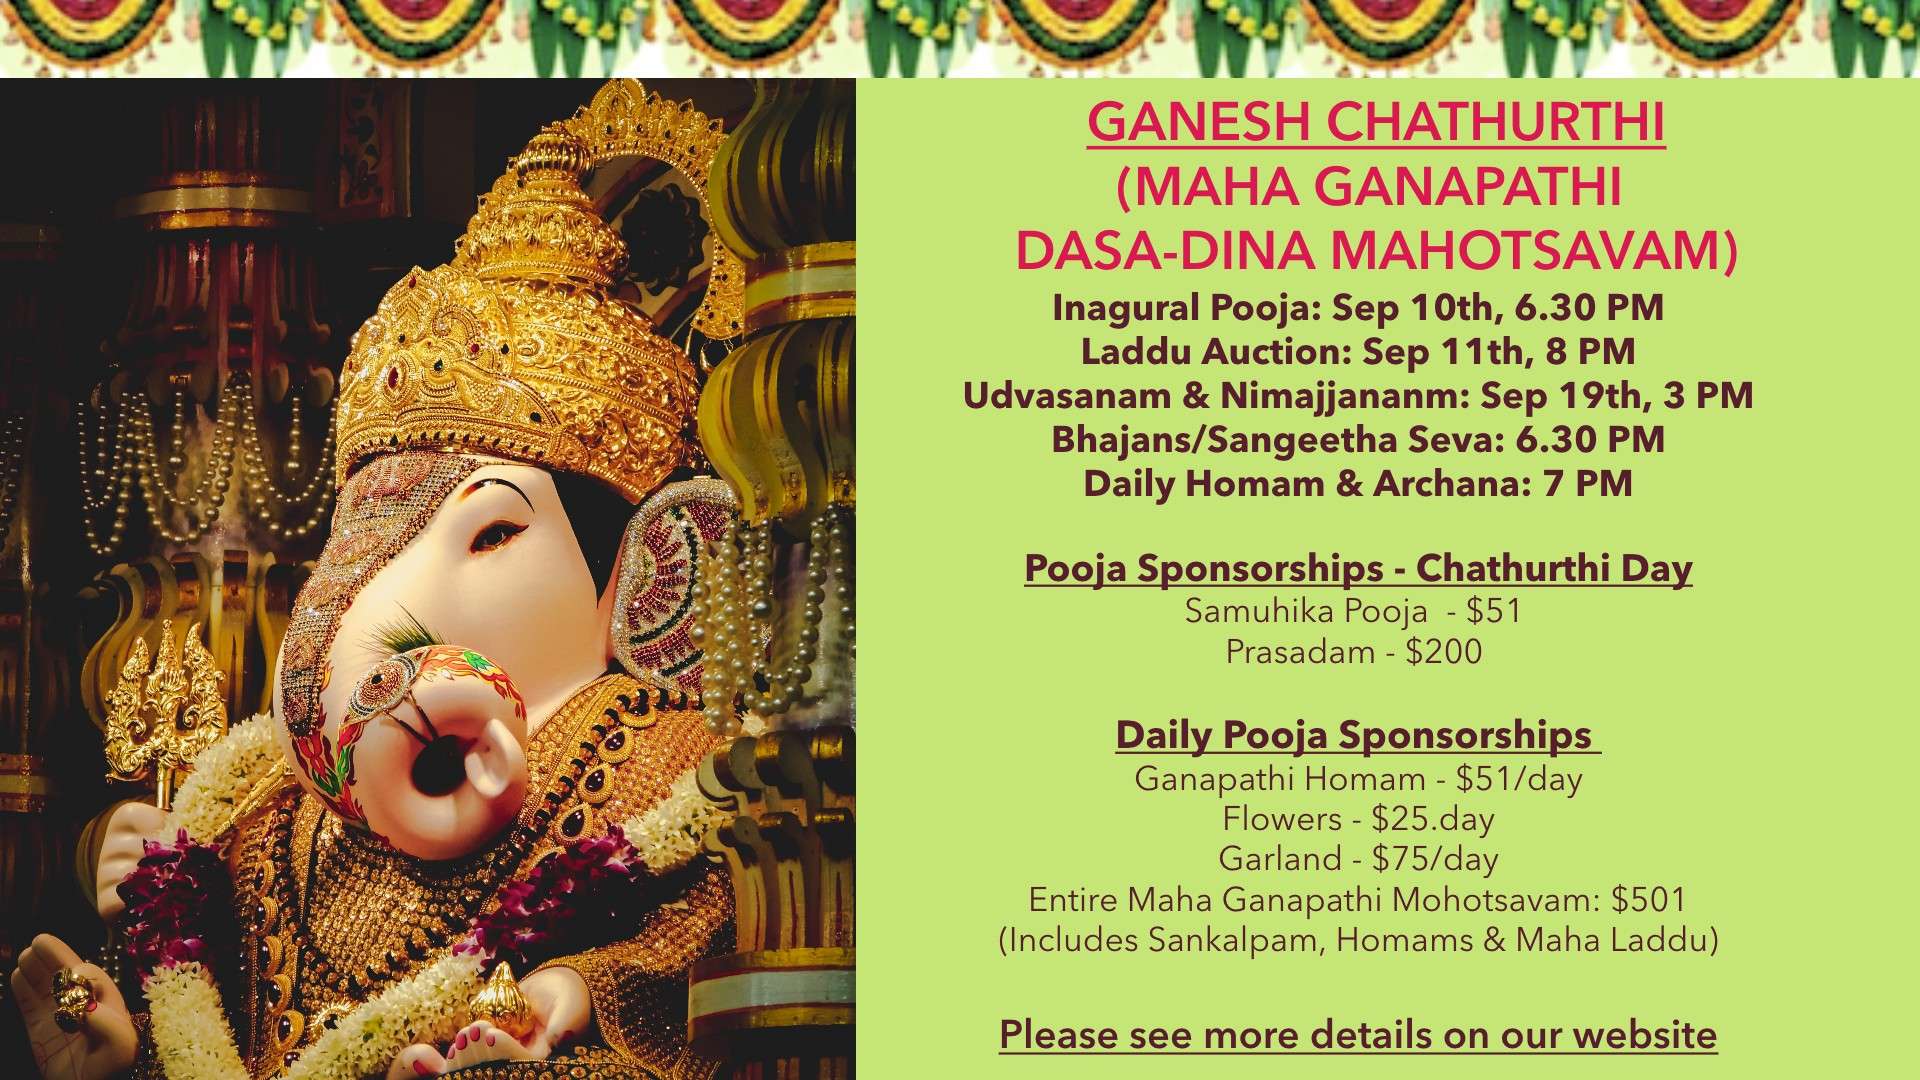 GANESH CHATHURTHI, SEP 10th to 19th